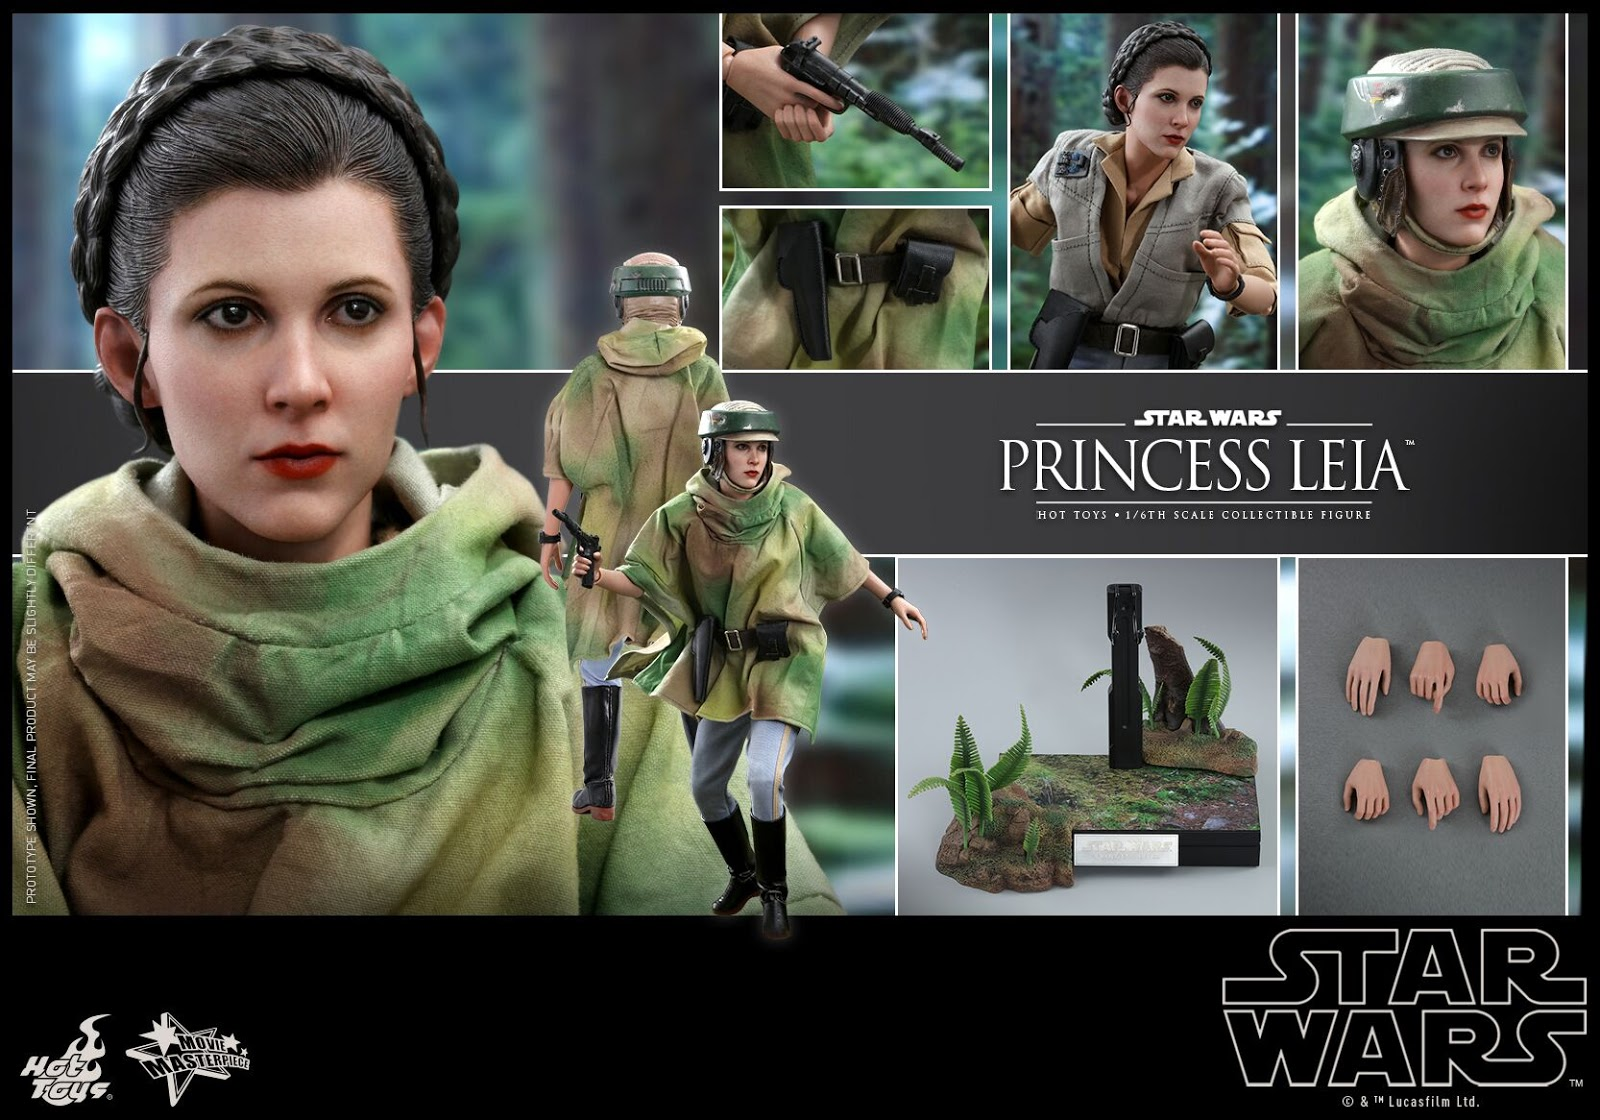 Hot Toys Star Wars Princess Leia and Wicket